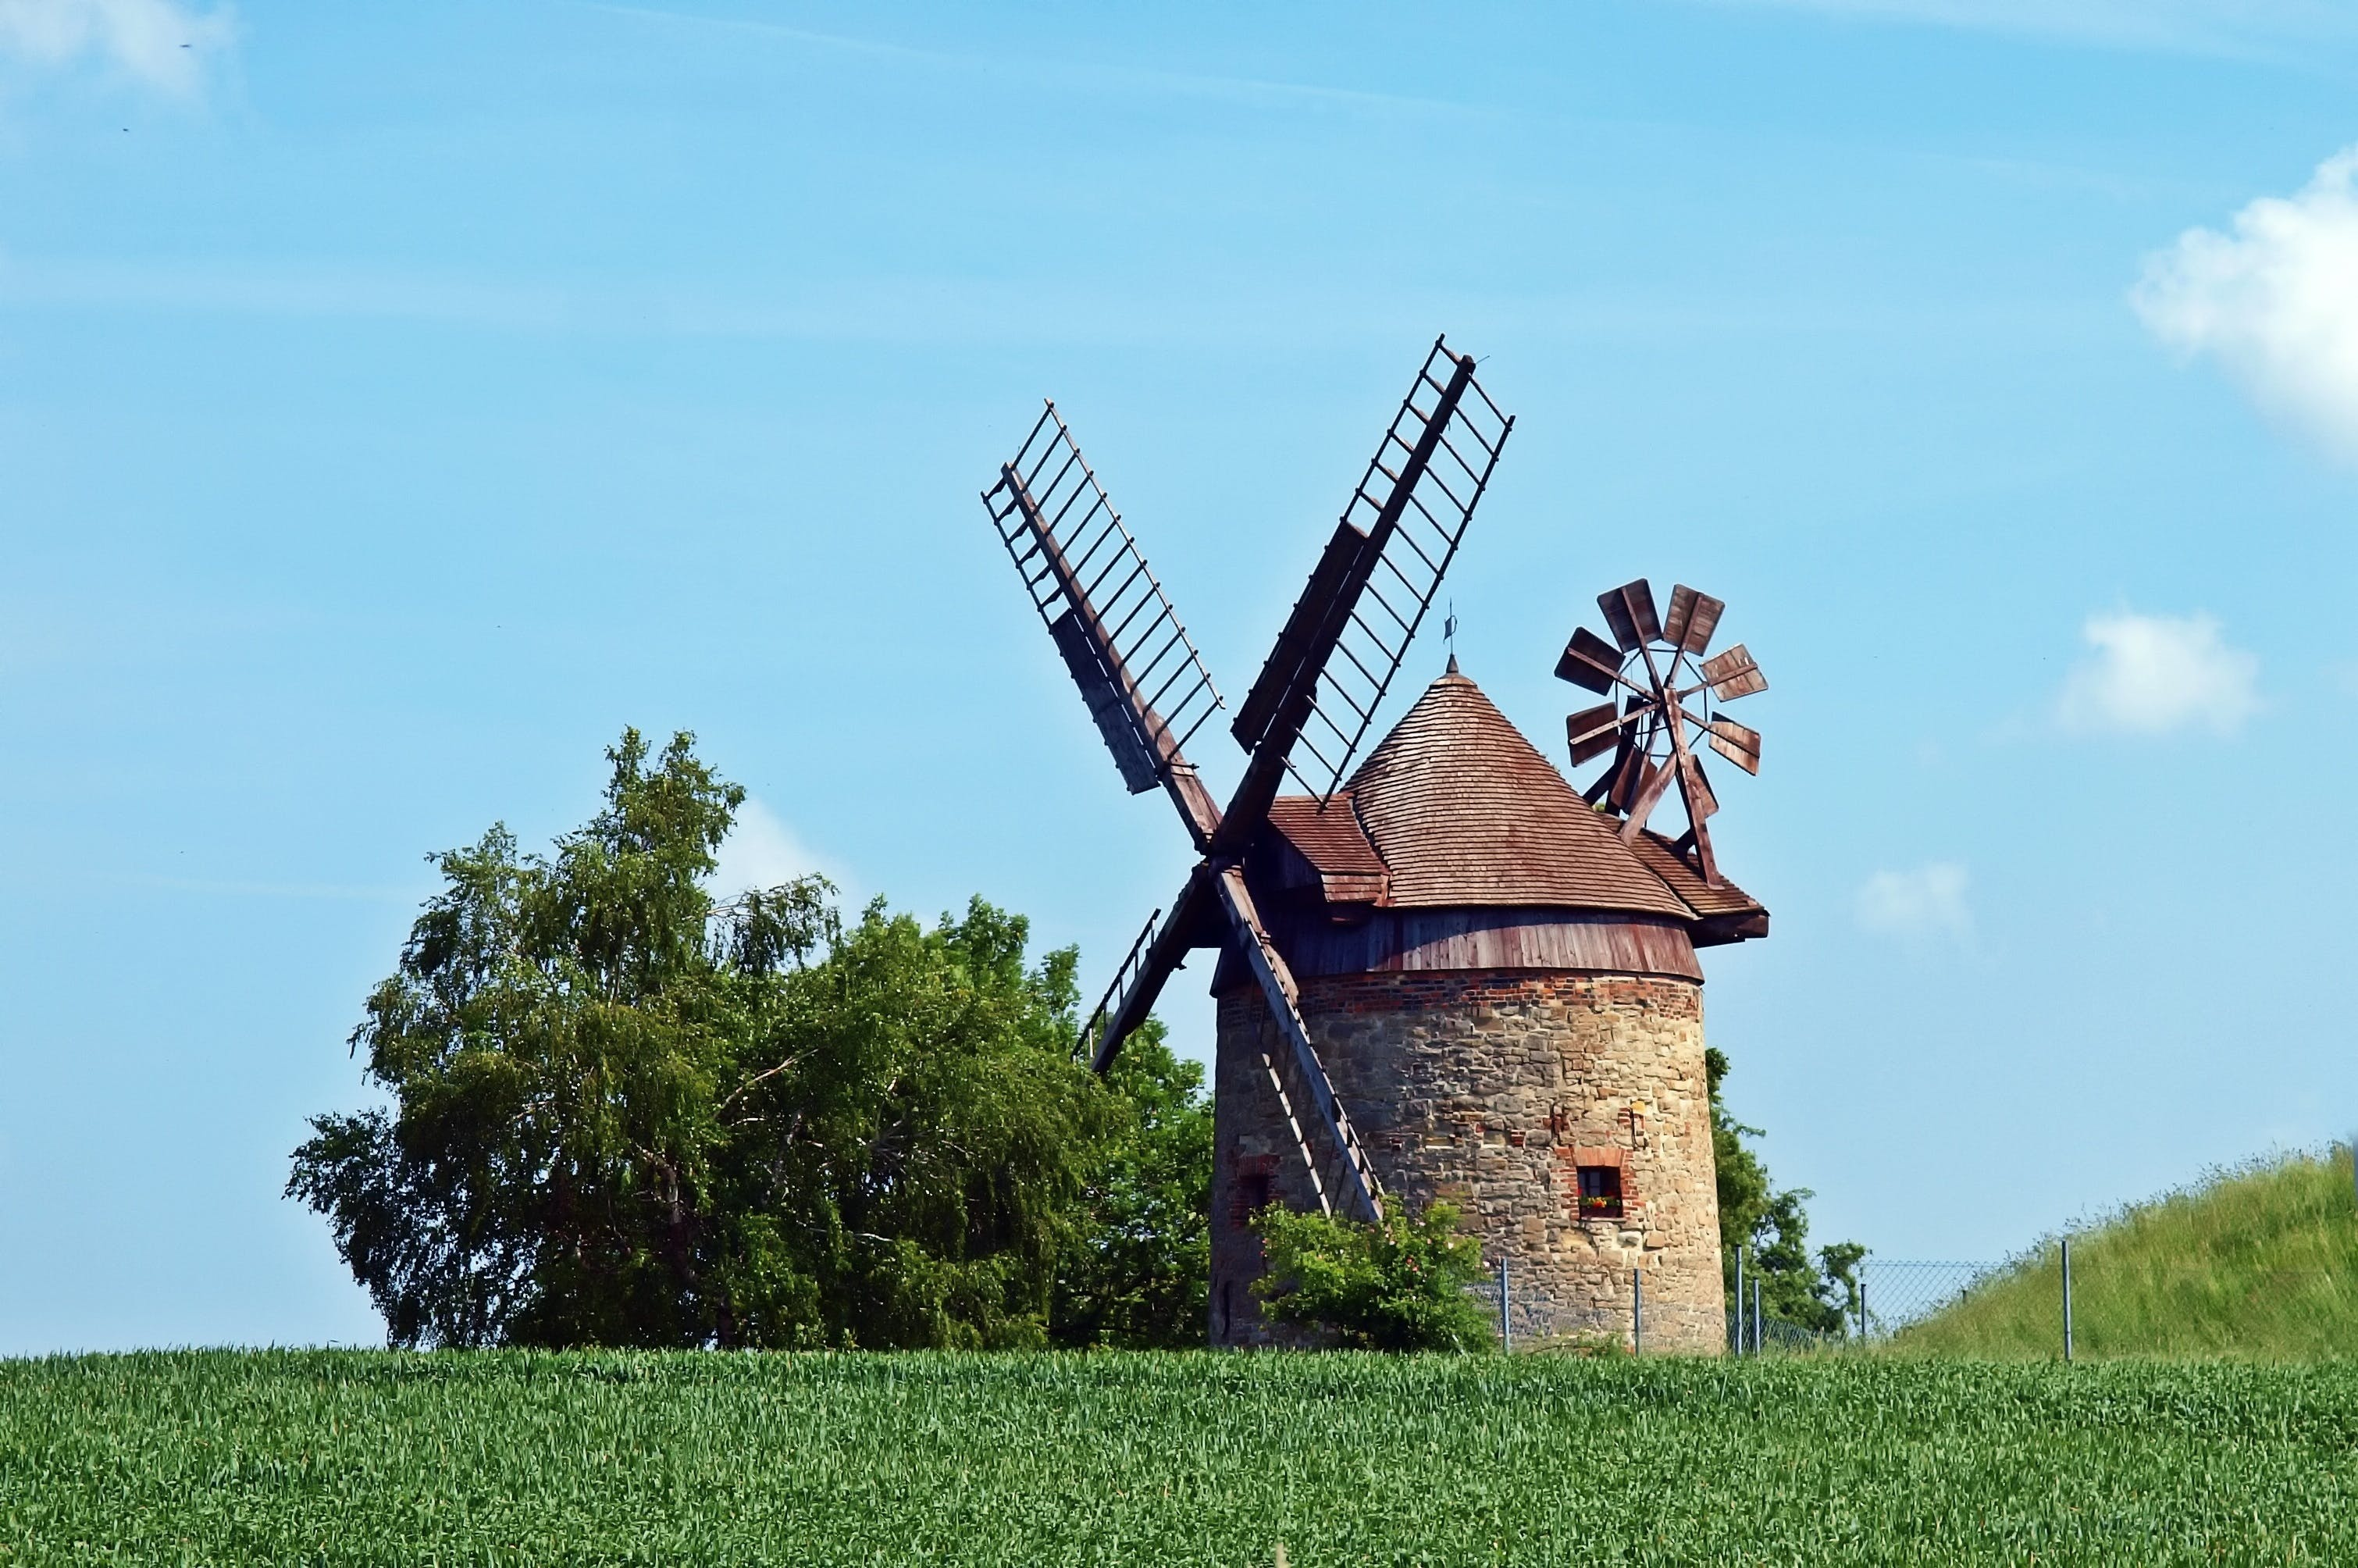 Brown and Gray Windmill Beside Green Tree Under Blue Cloudy Sky during Day Time